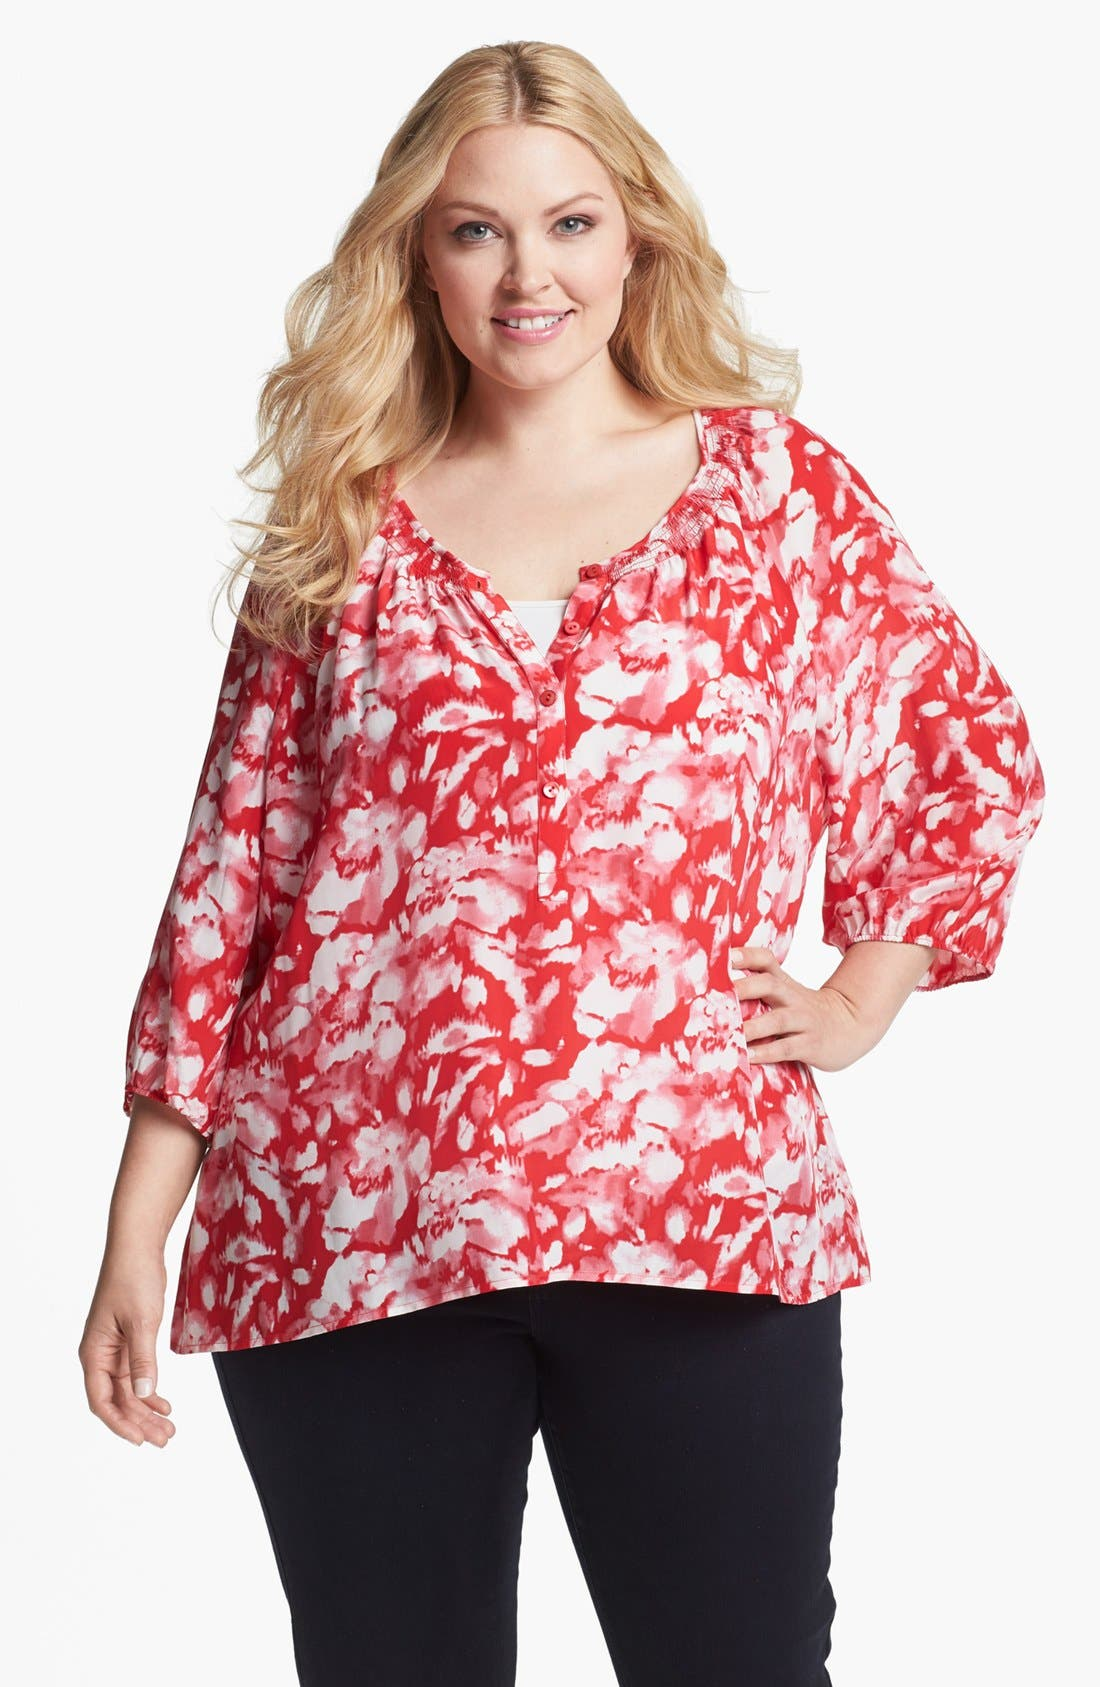 Alternate Image 1 Selected - Sejour Floral Print Smocked Top (Plus Size)